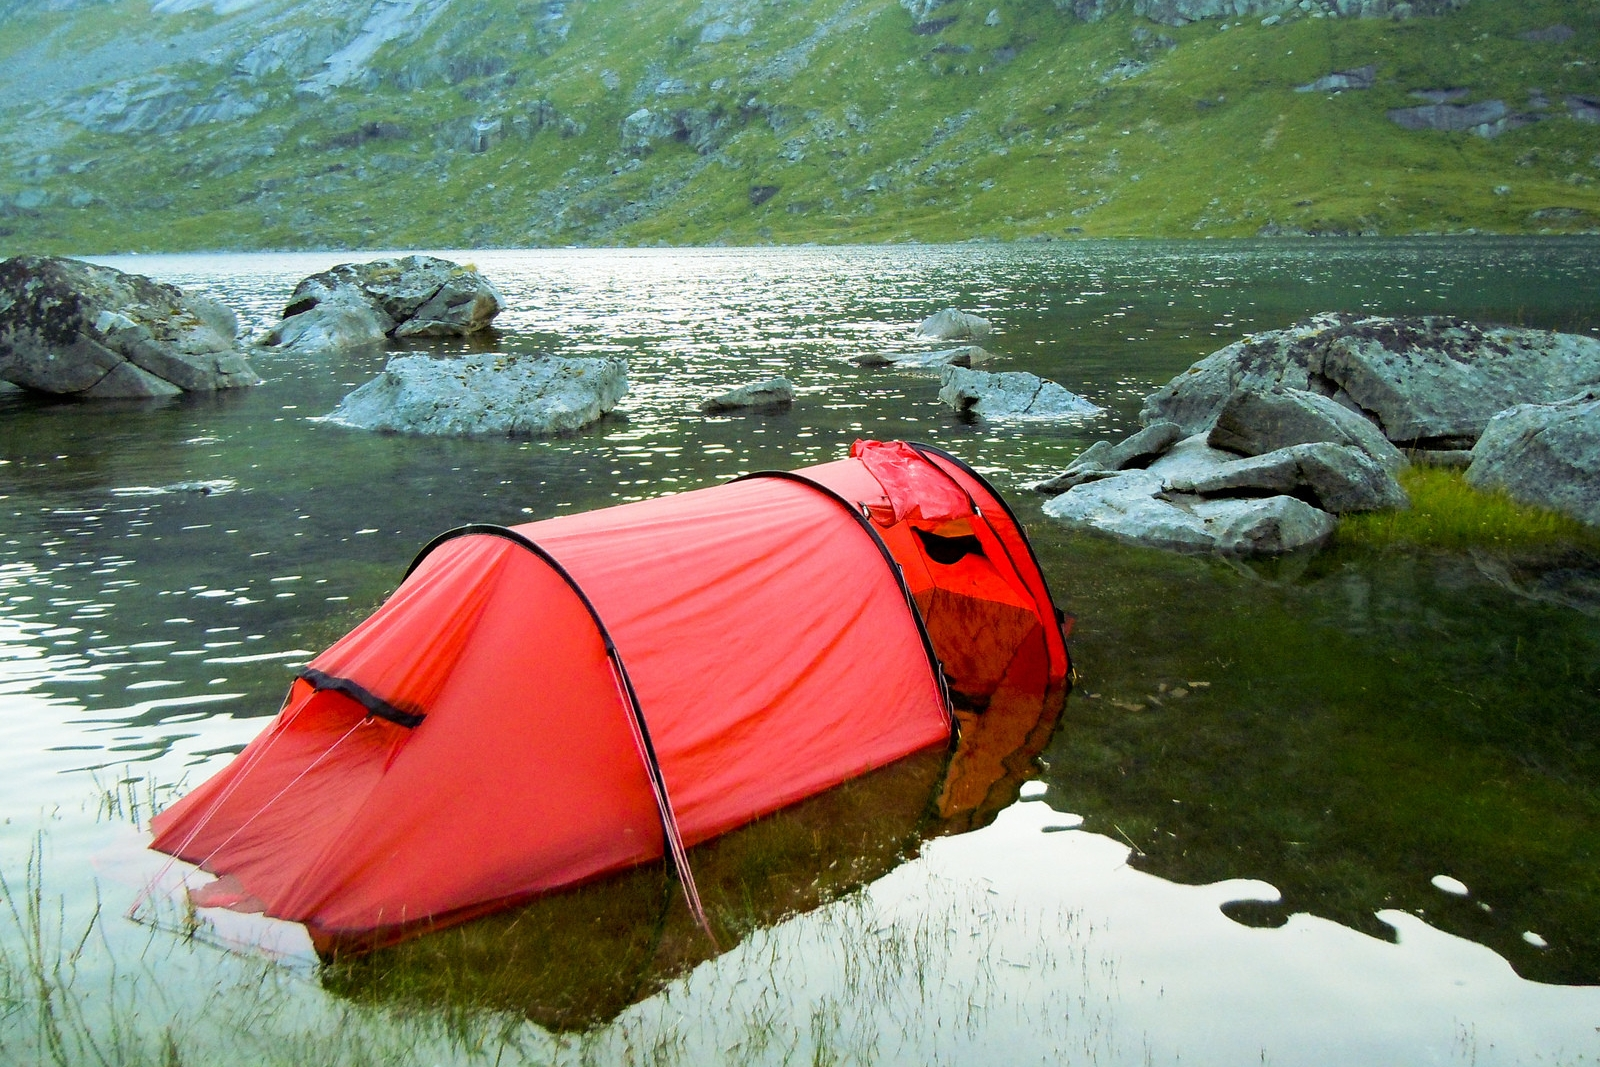 swamping your tent